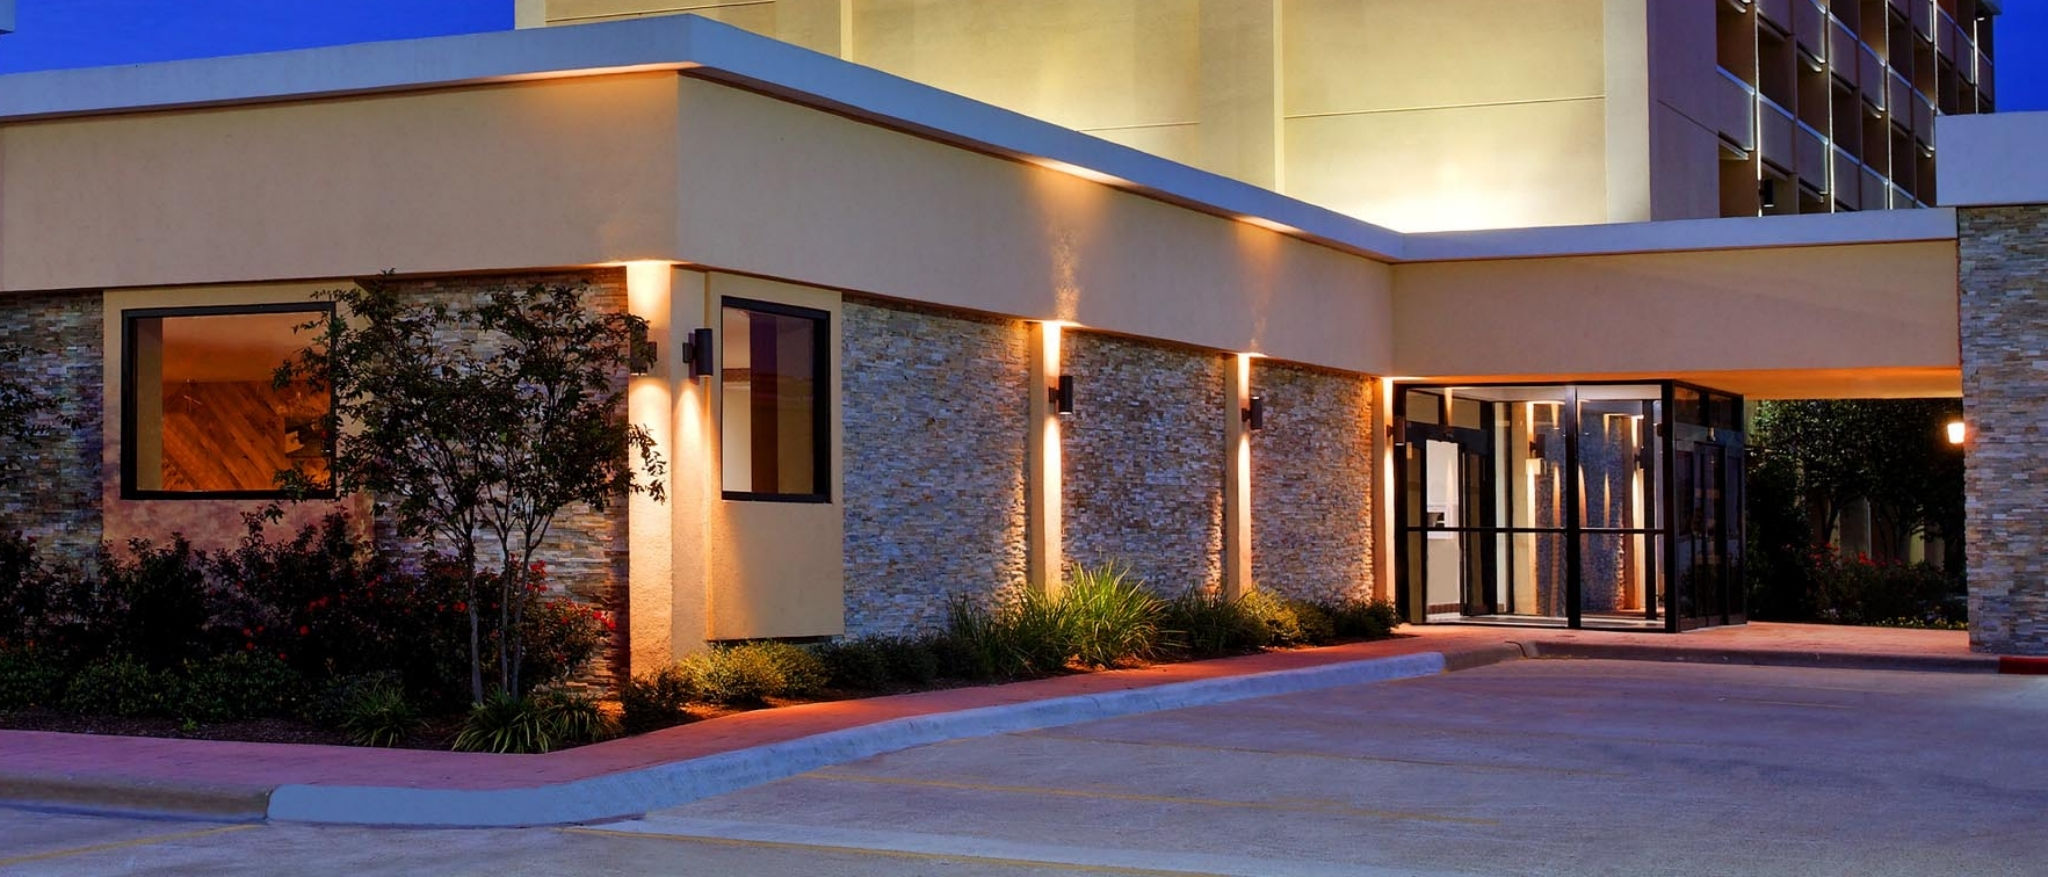 Four Points by Sheraton College Station - Hotel Exterior